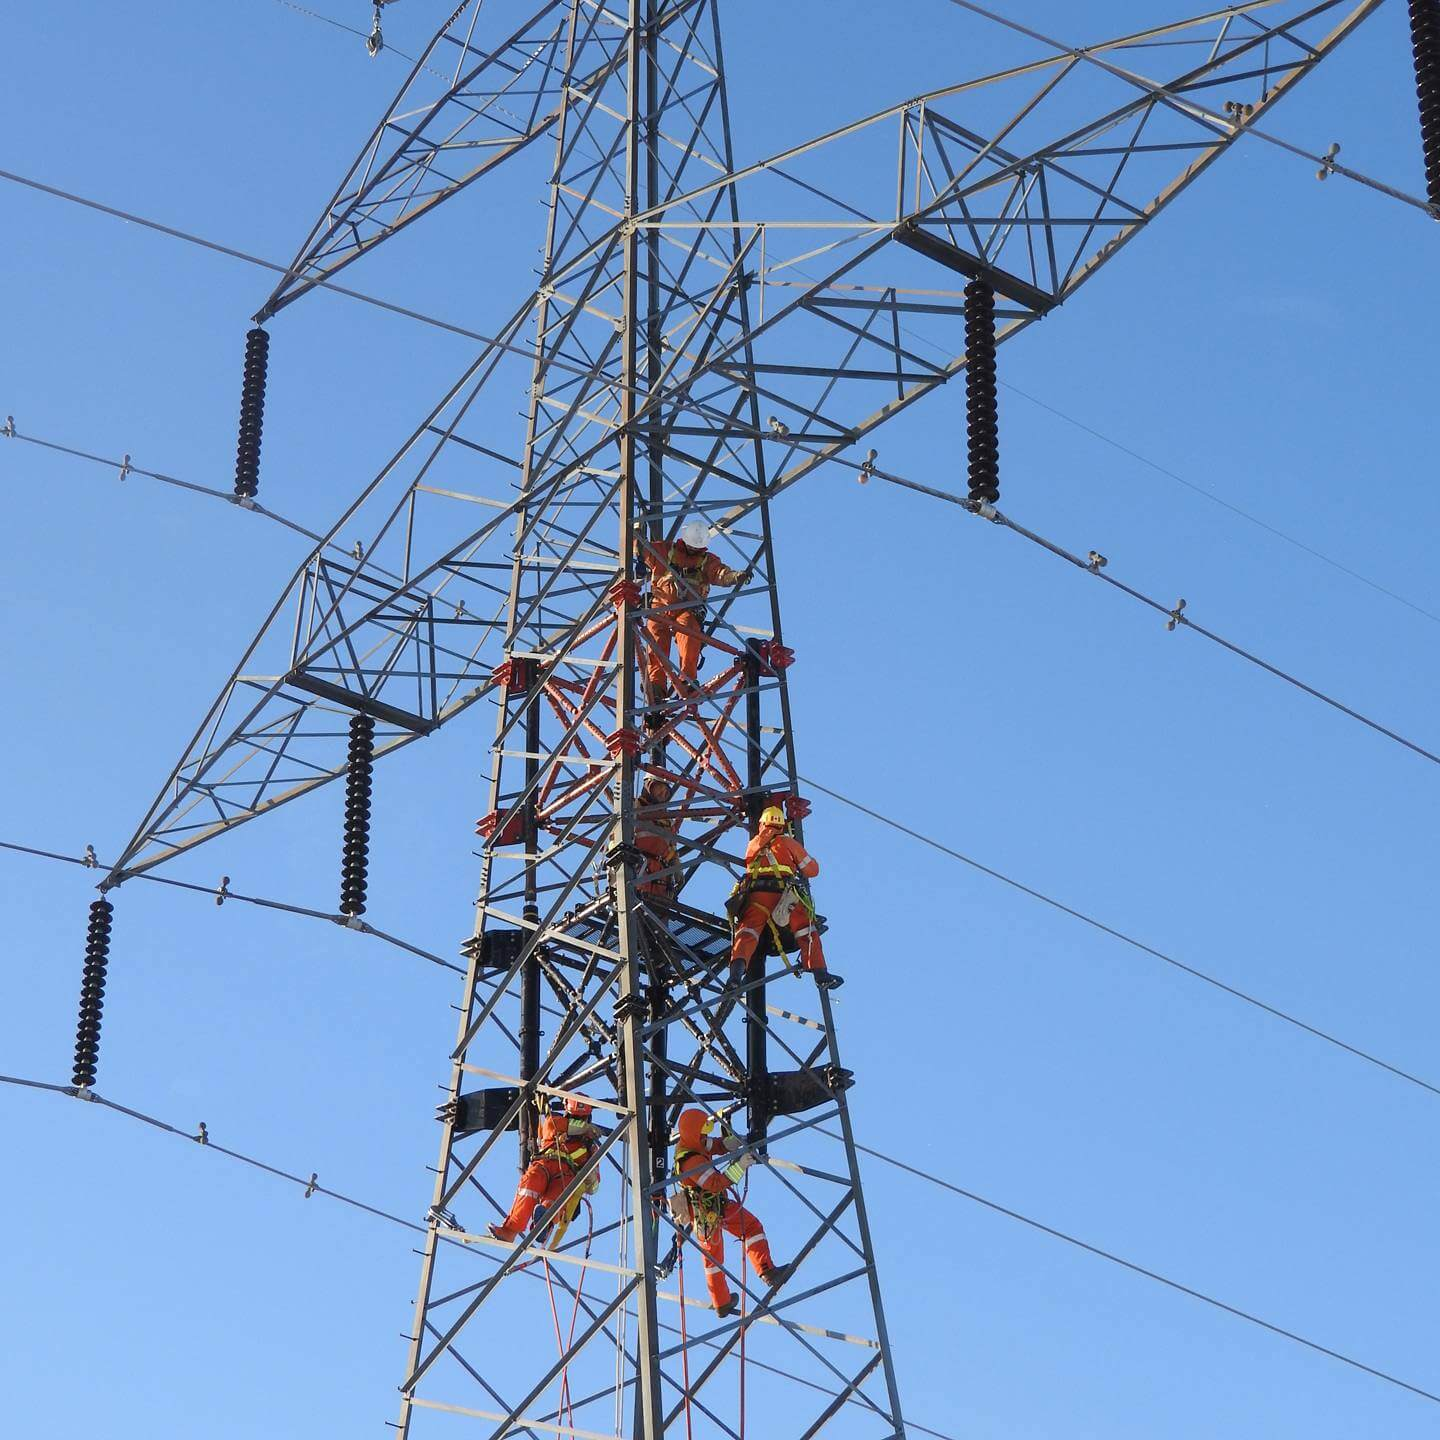 5 workers on a transmission tower